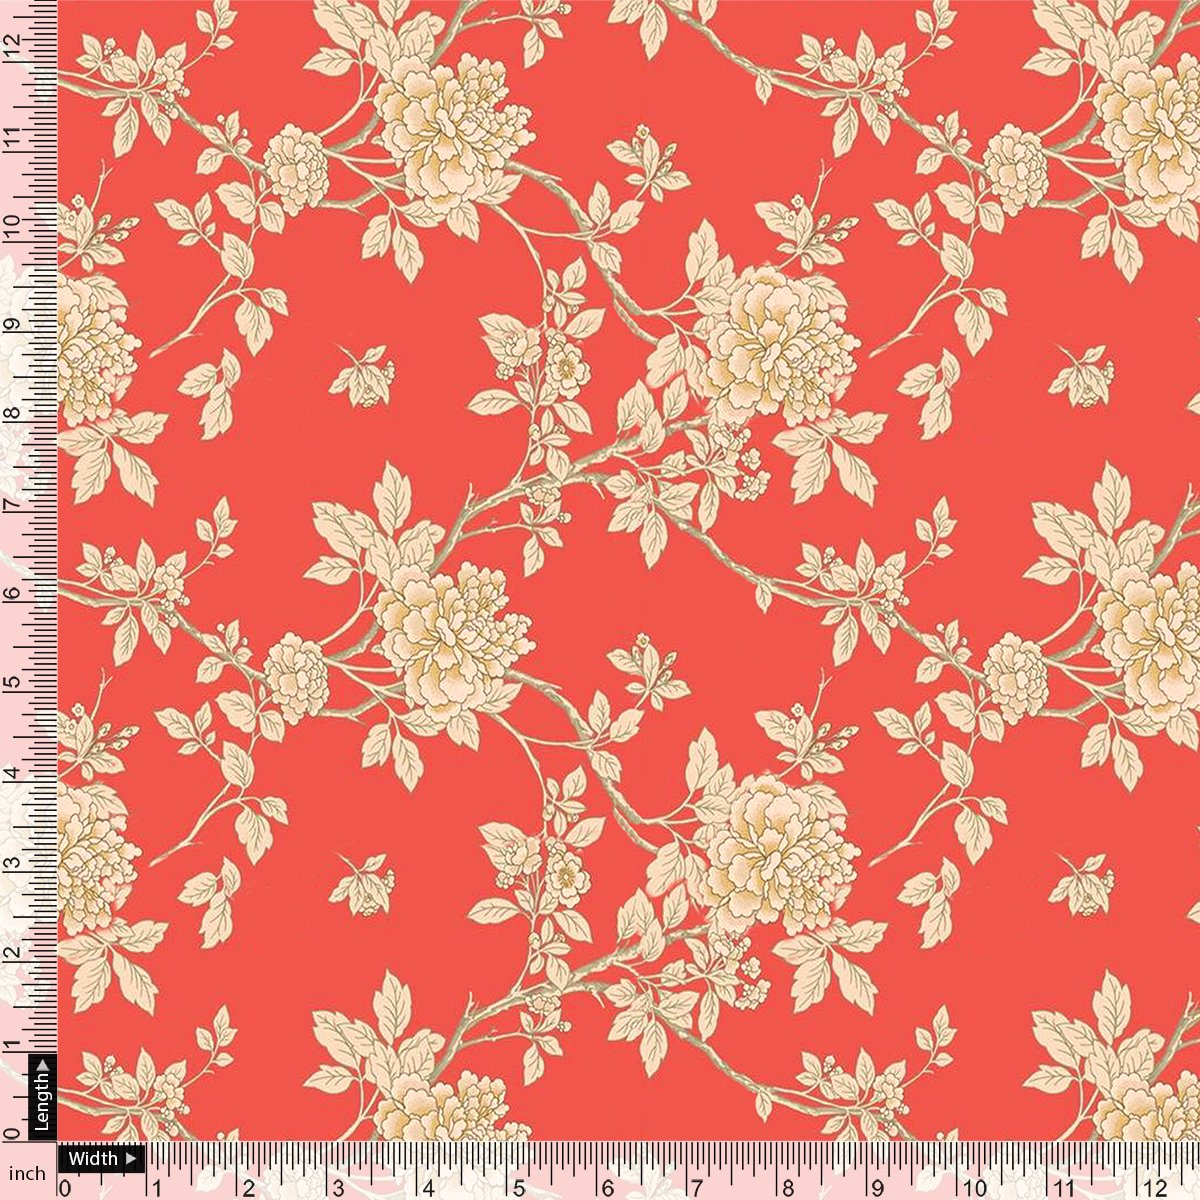 Flower Bunch On Dreamy Orange Digital Printed Fabric  - Pure Cotton - FAB VOGUE Studio